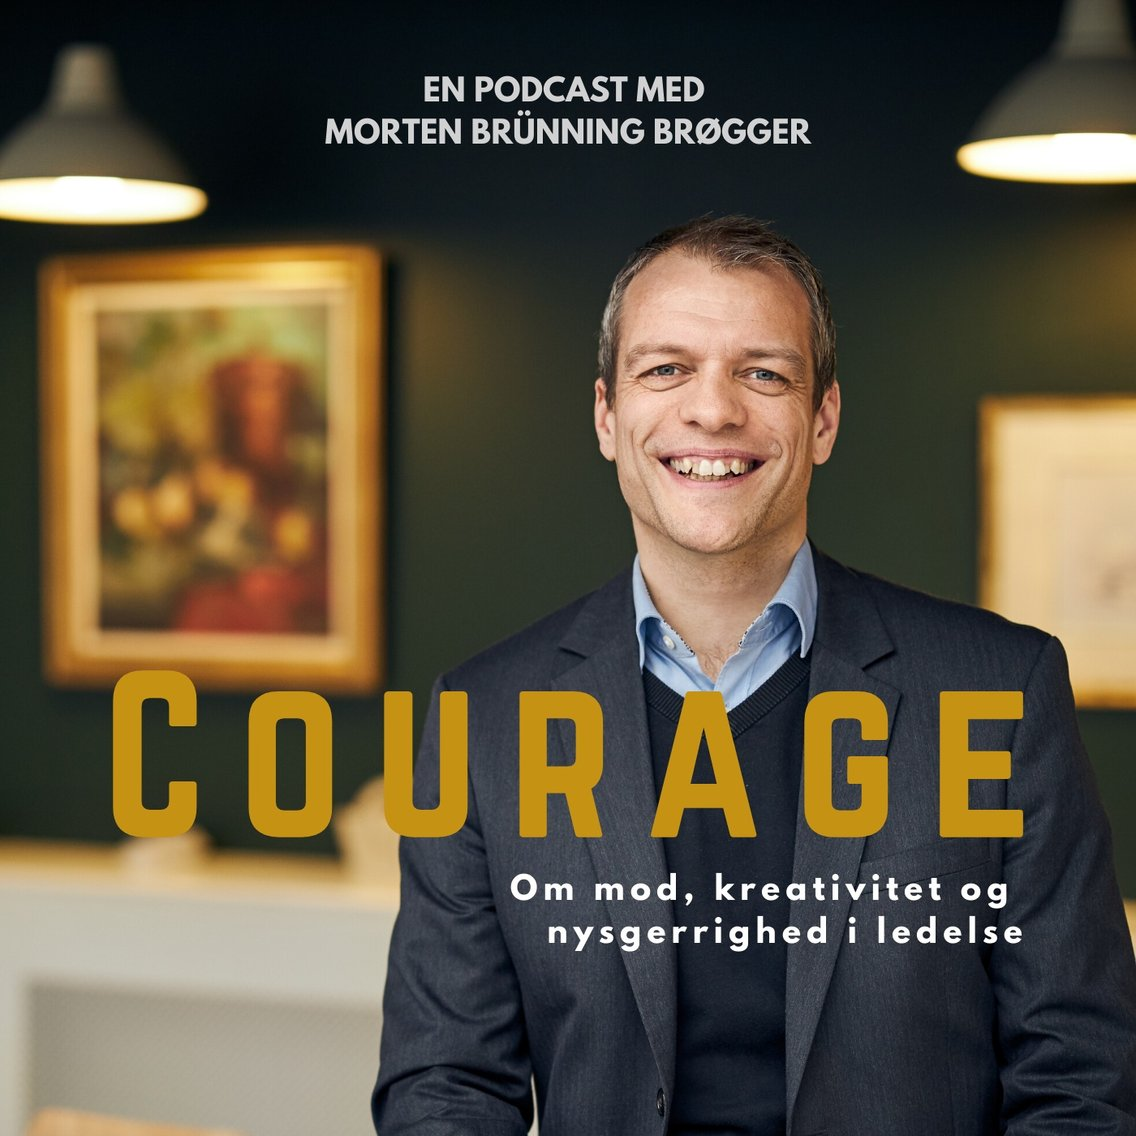 Courage - Cover Image